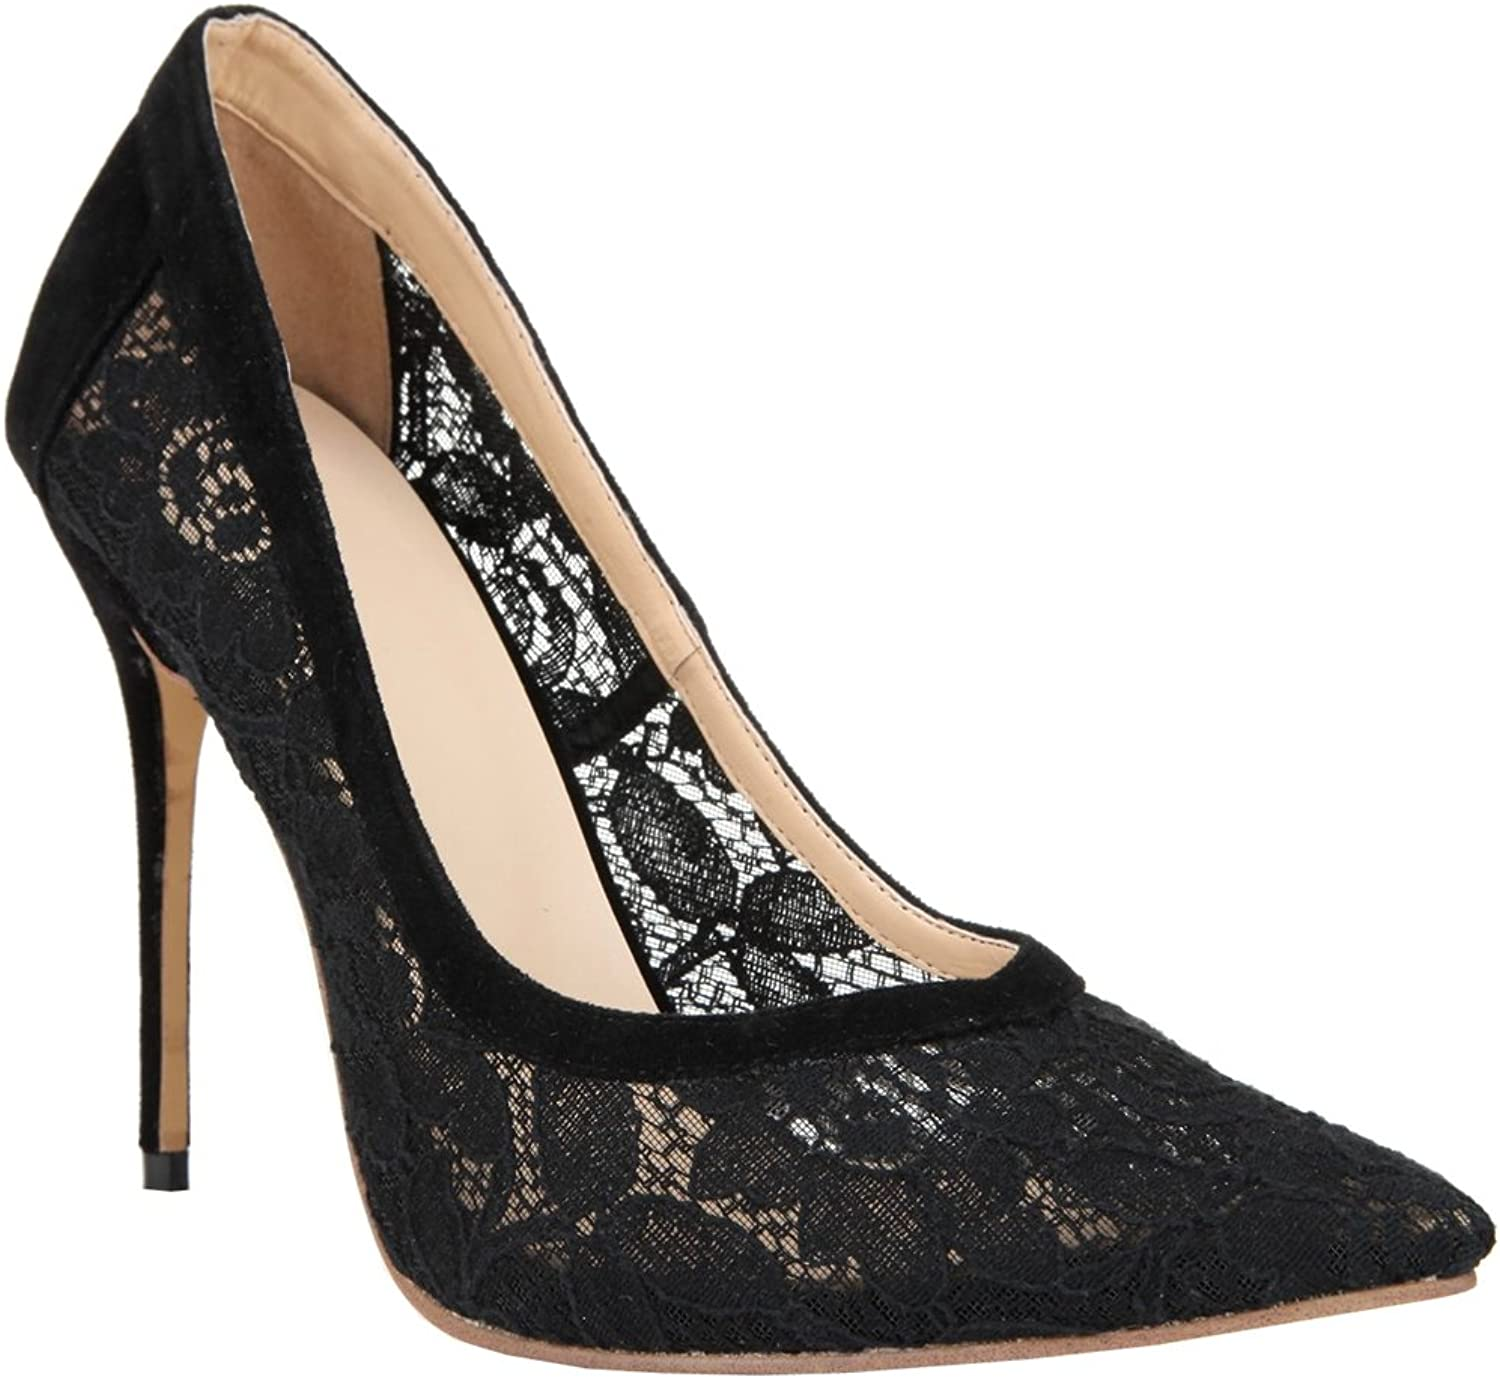 TDA Women's Sexy Breathable Lace Evening Party Dress Stiletto Pumps